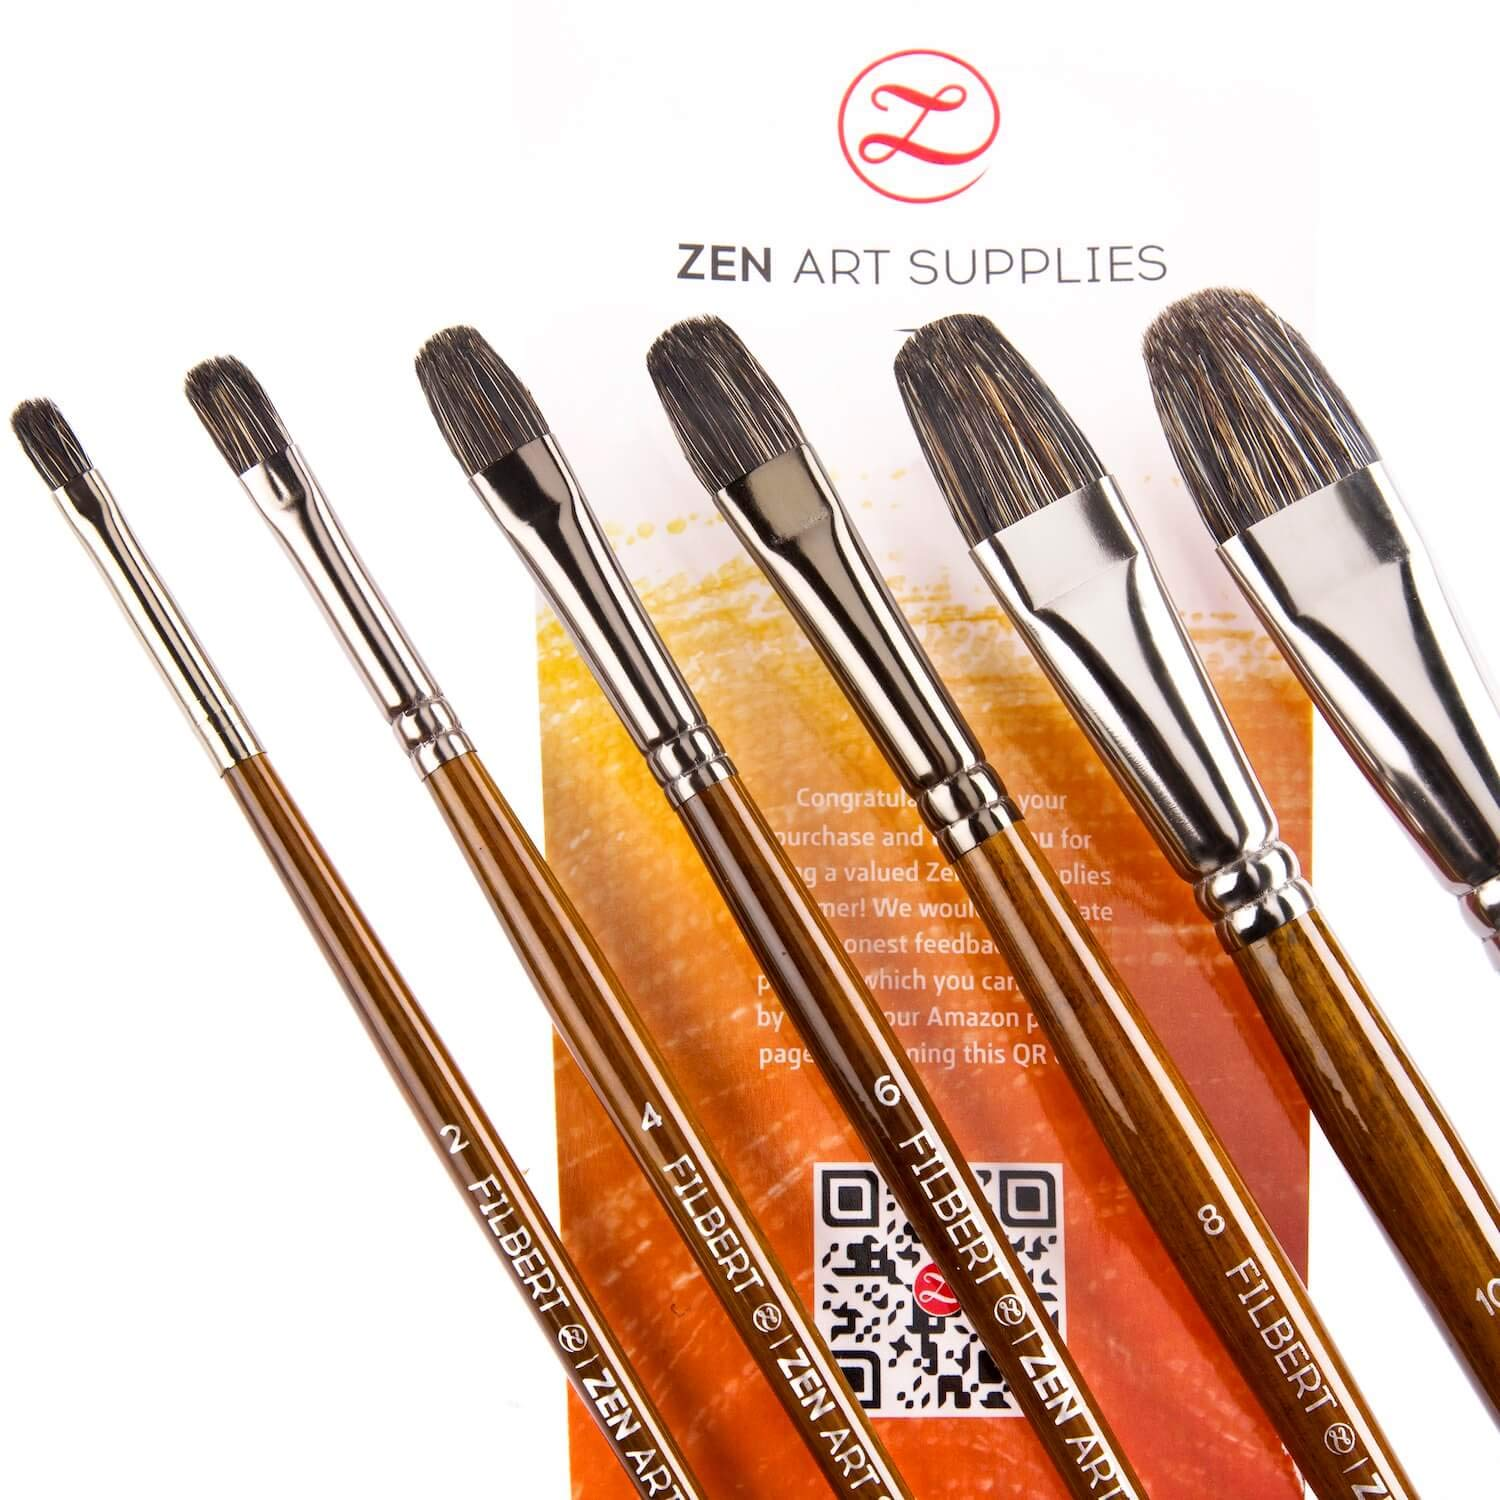 Professional Oil Paint Brushes (6-pcs Set) Filbert Brushes - Long-Lasting Natural Badger & Synthetic Blend - Acrylic Paint Brushes with Lacquered Birchwood Long Handles. Artist's Choice Collection by ZenART Supplies